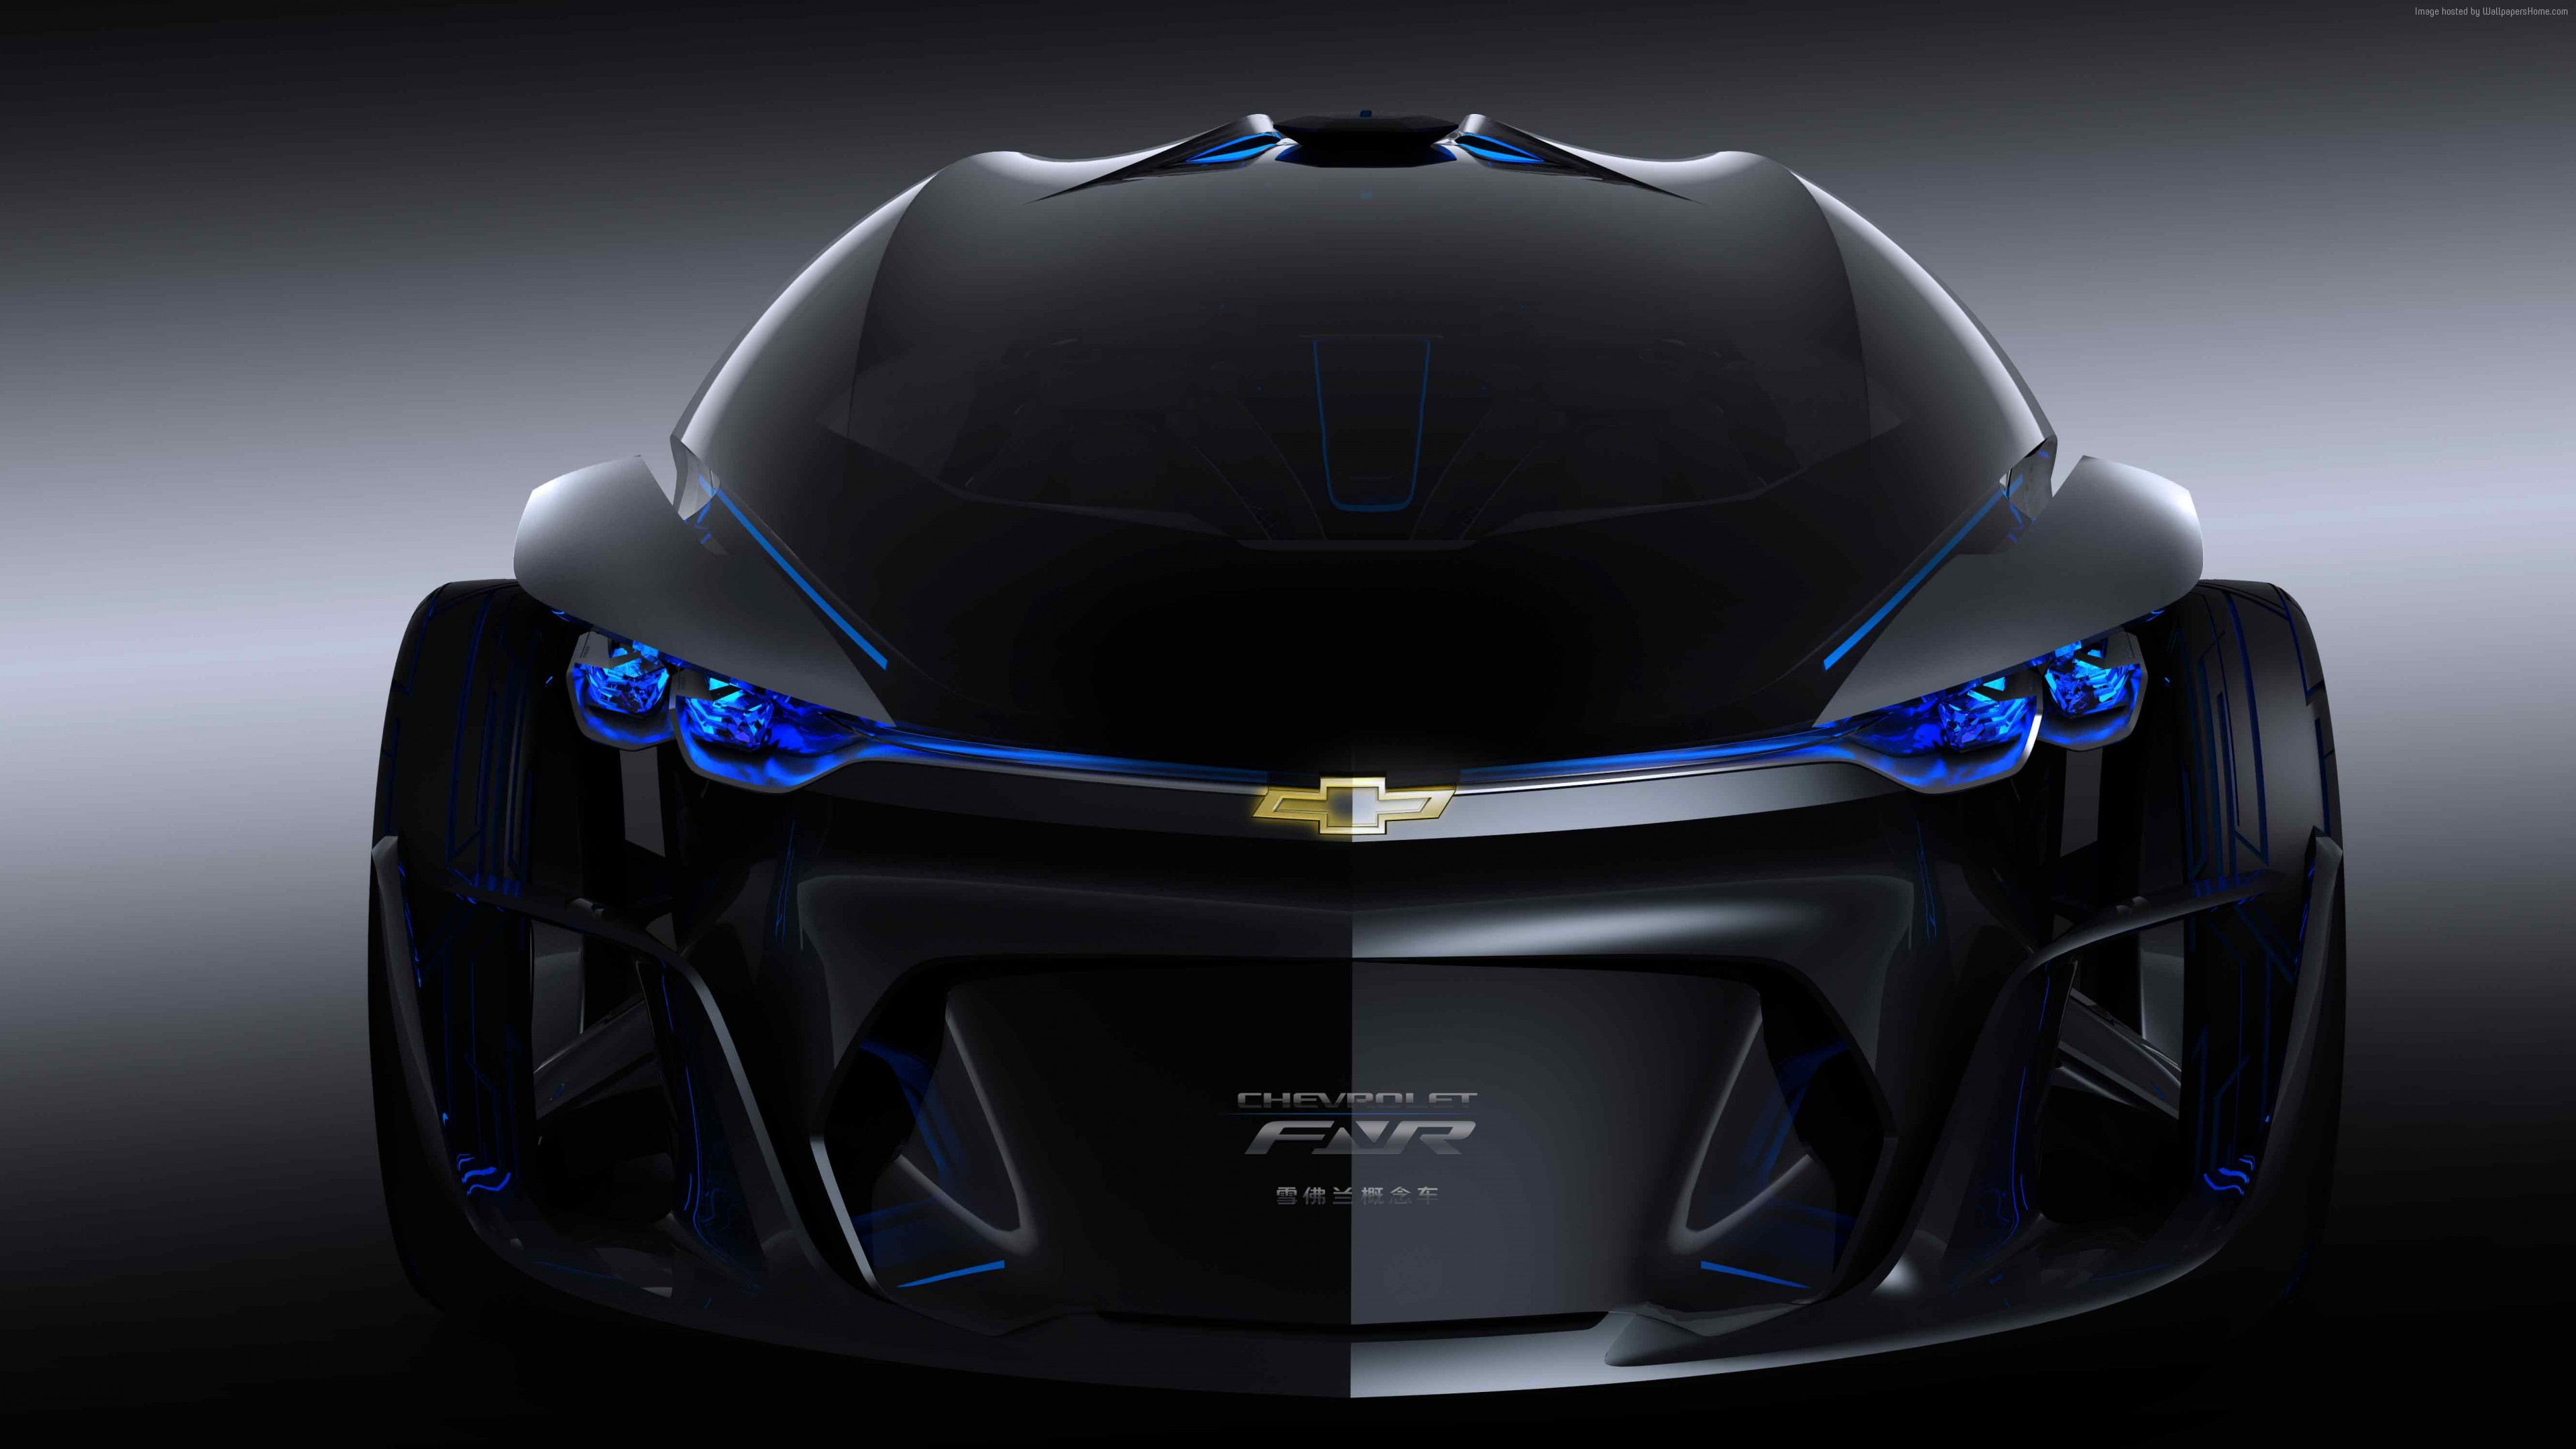 chevrolet futuristic concept car hd cars 4k wallpapers images backgrounds photos and pictures. Black Bedroom Furniture Sets. Home Design Ideas